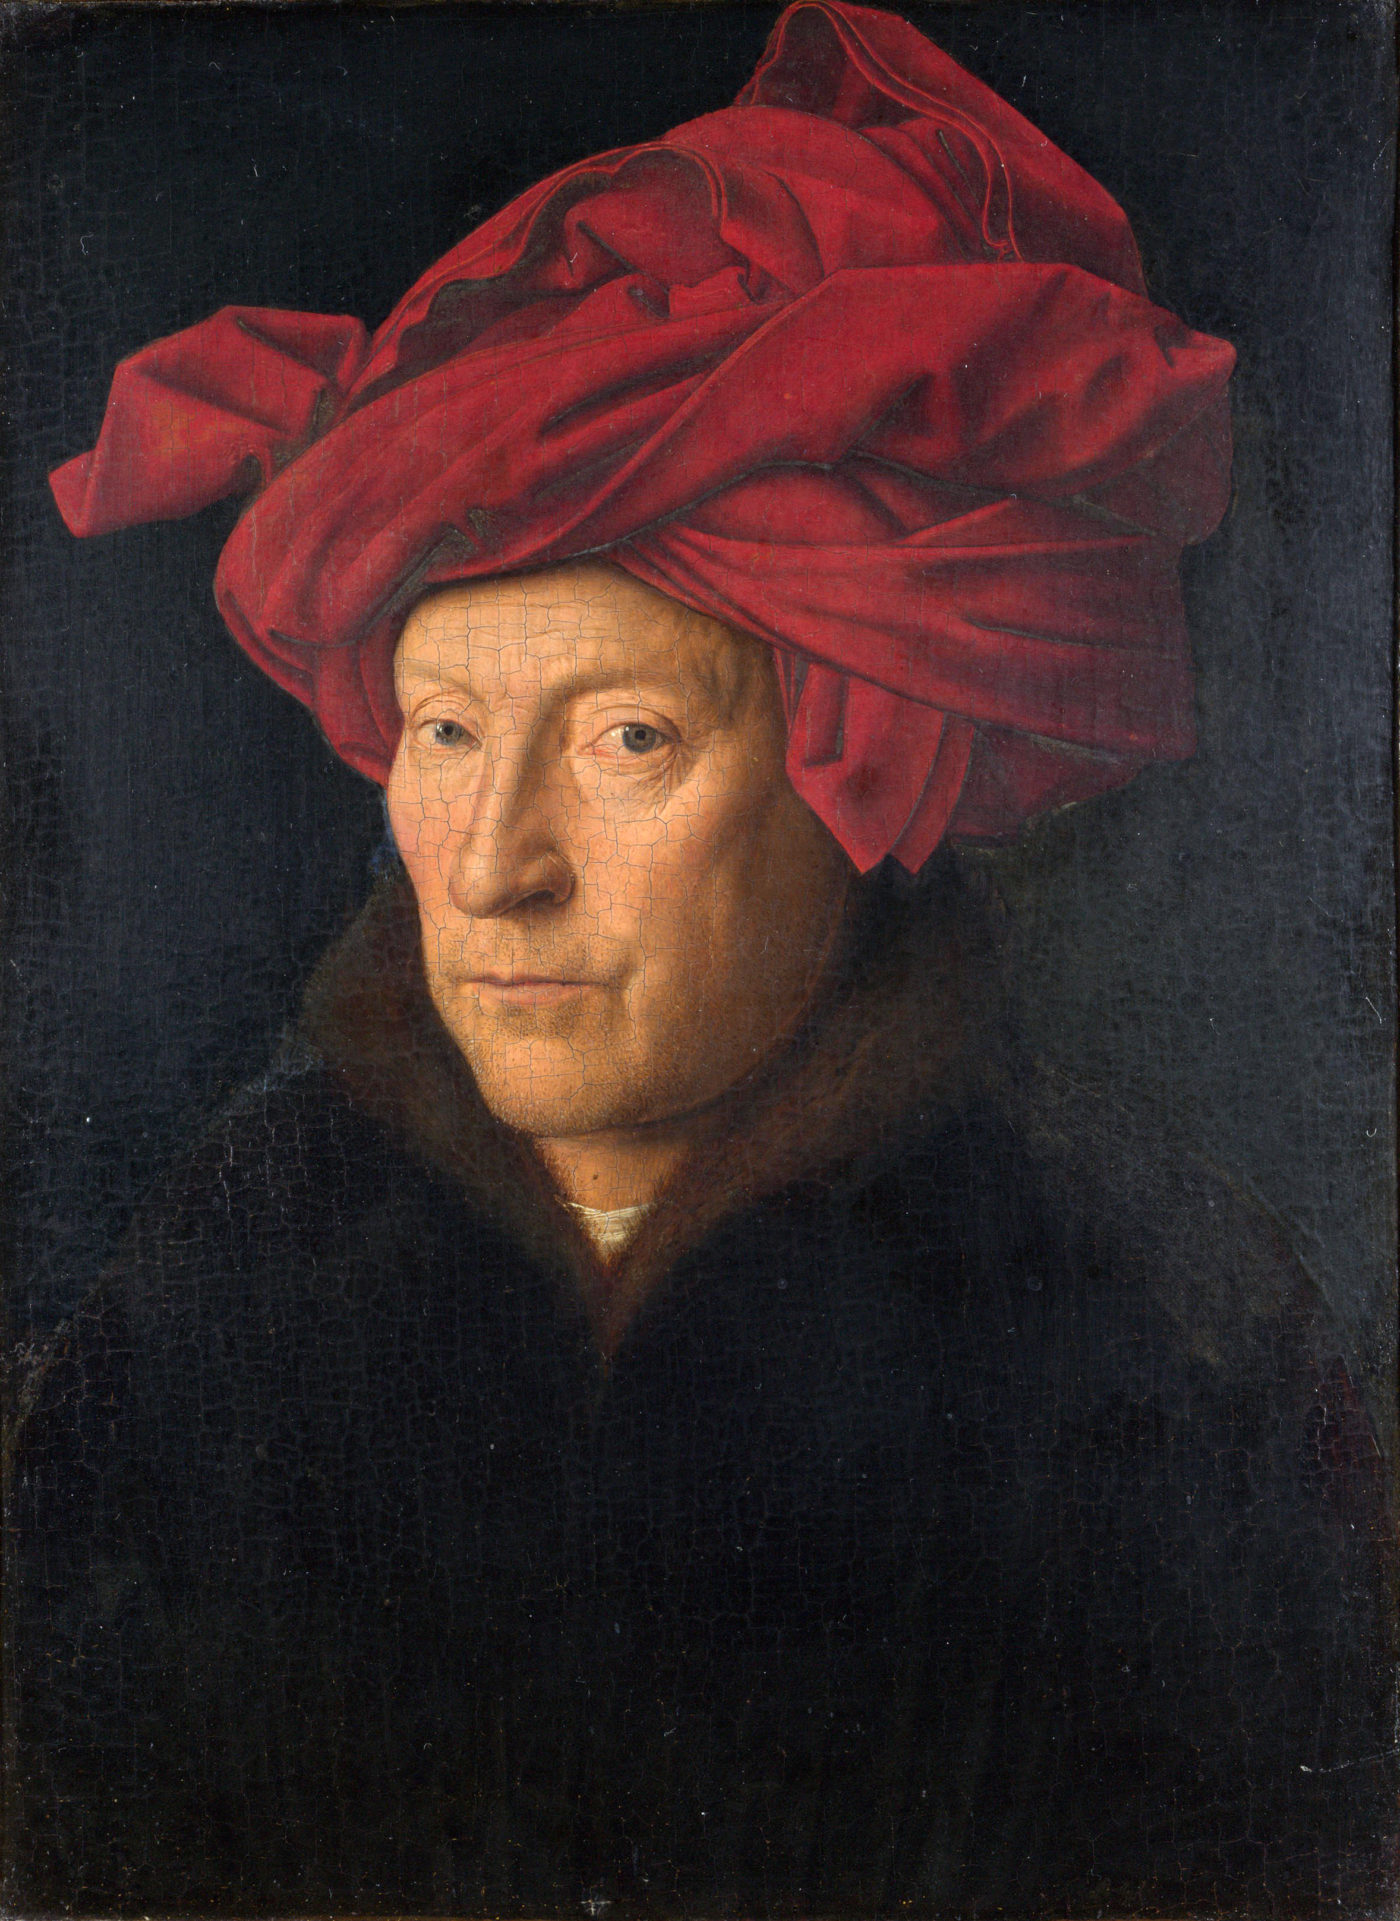 Portrait of a Man by Jan Van Eyck, 1433